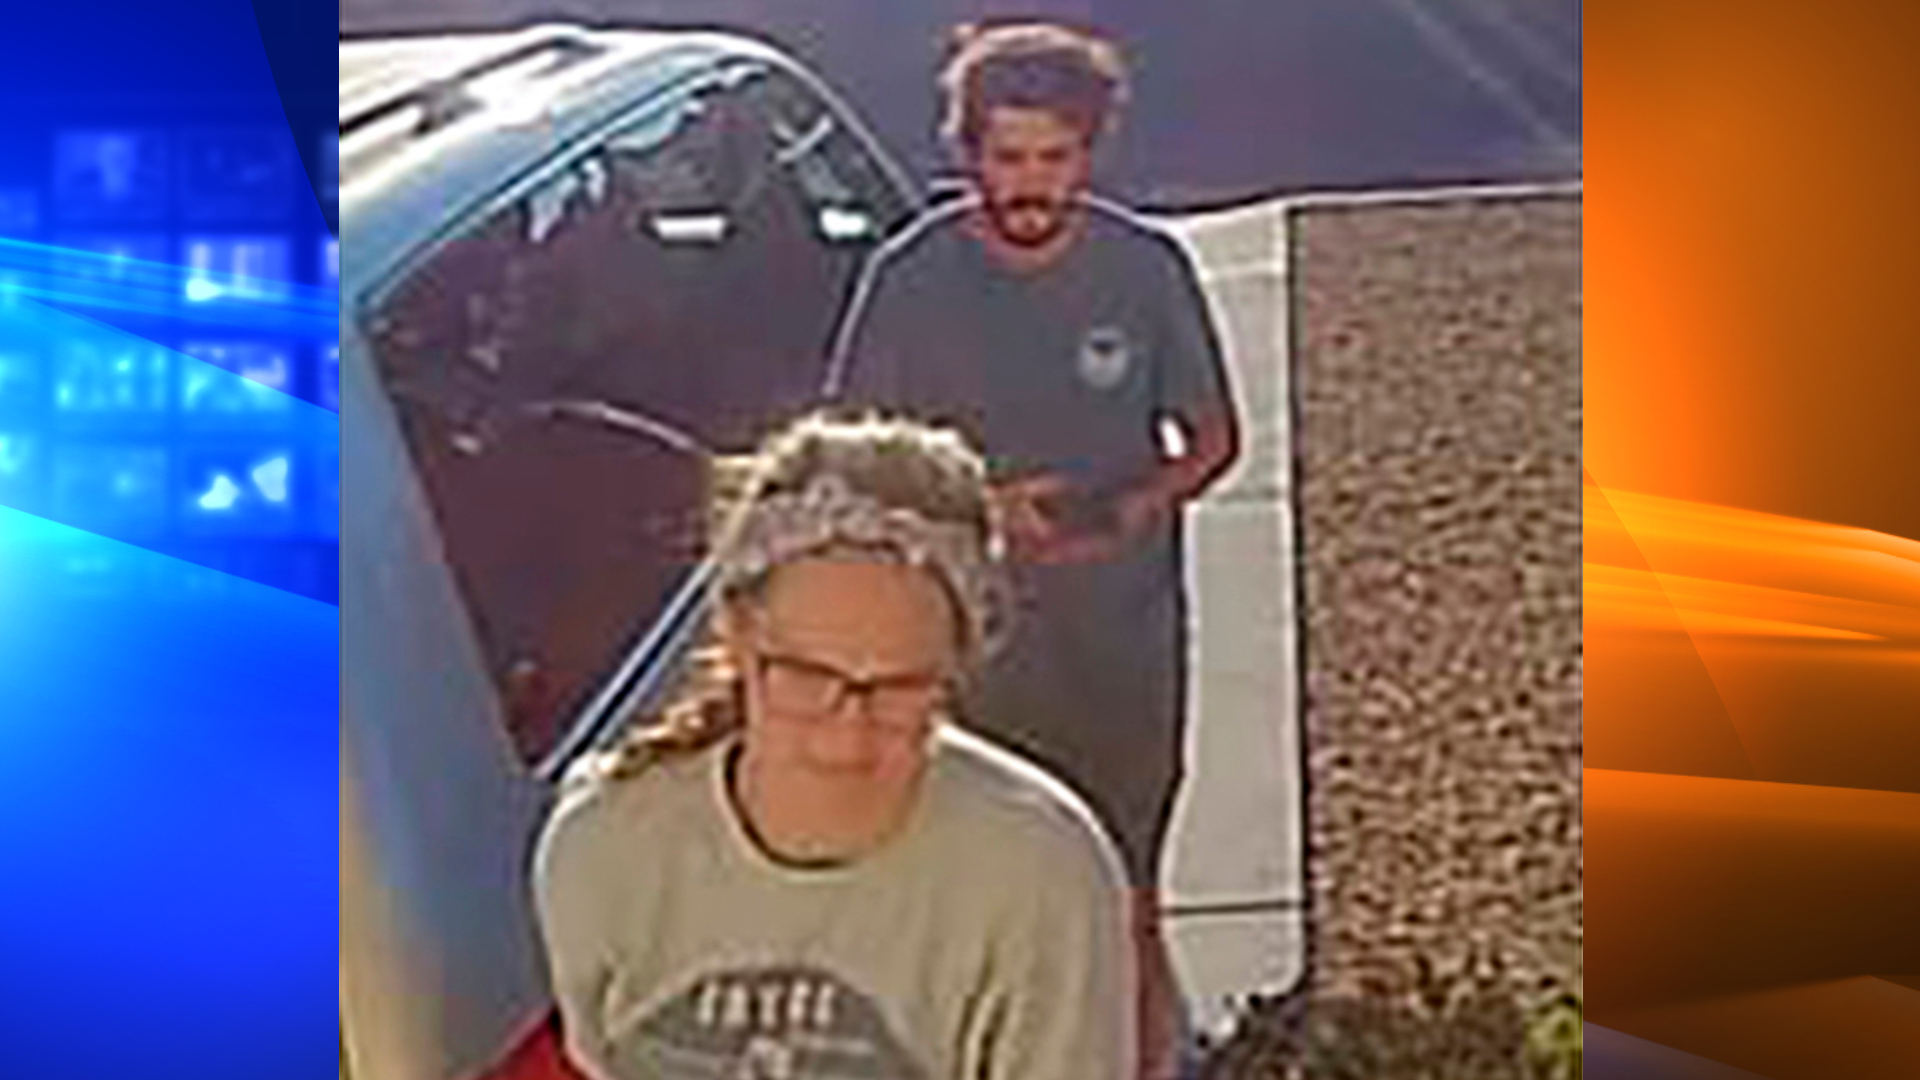 This undated image released by the Inyo County Sheriff's Office shows campers Alexander Lofgren, top, and Emily Henkel.